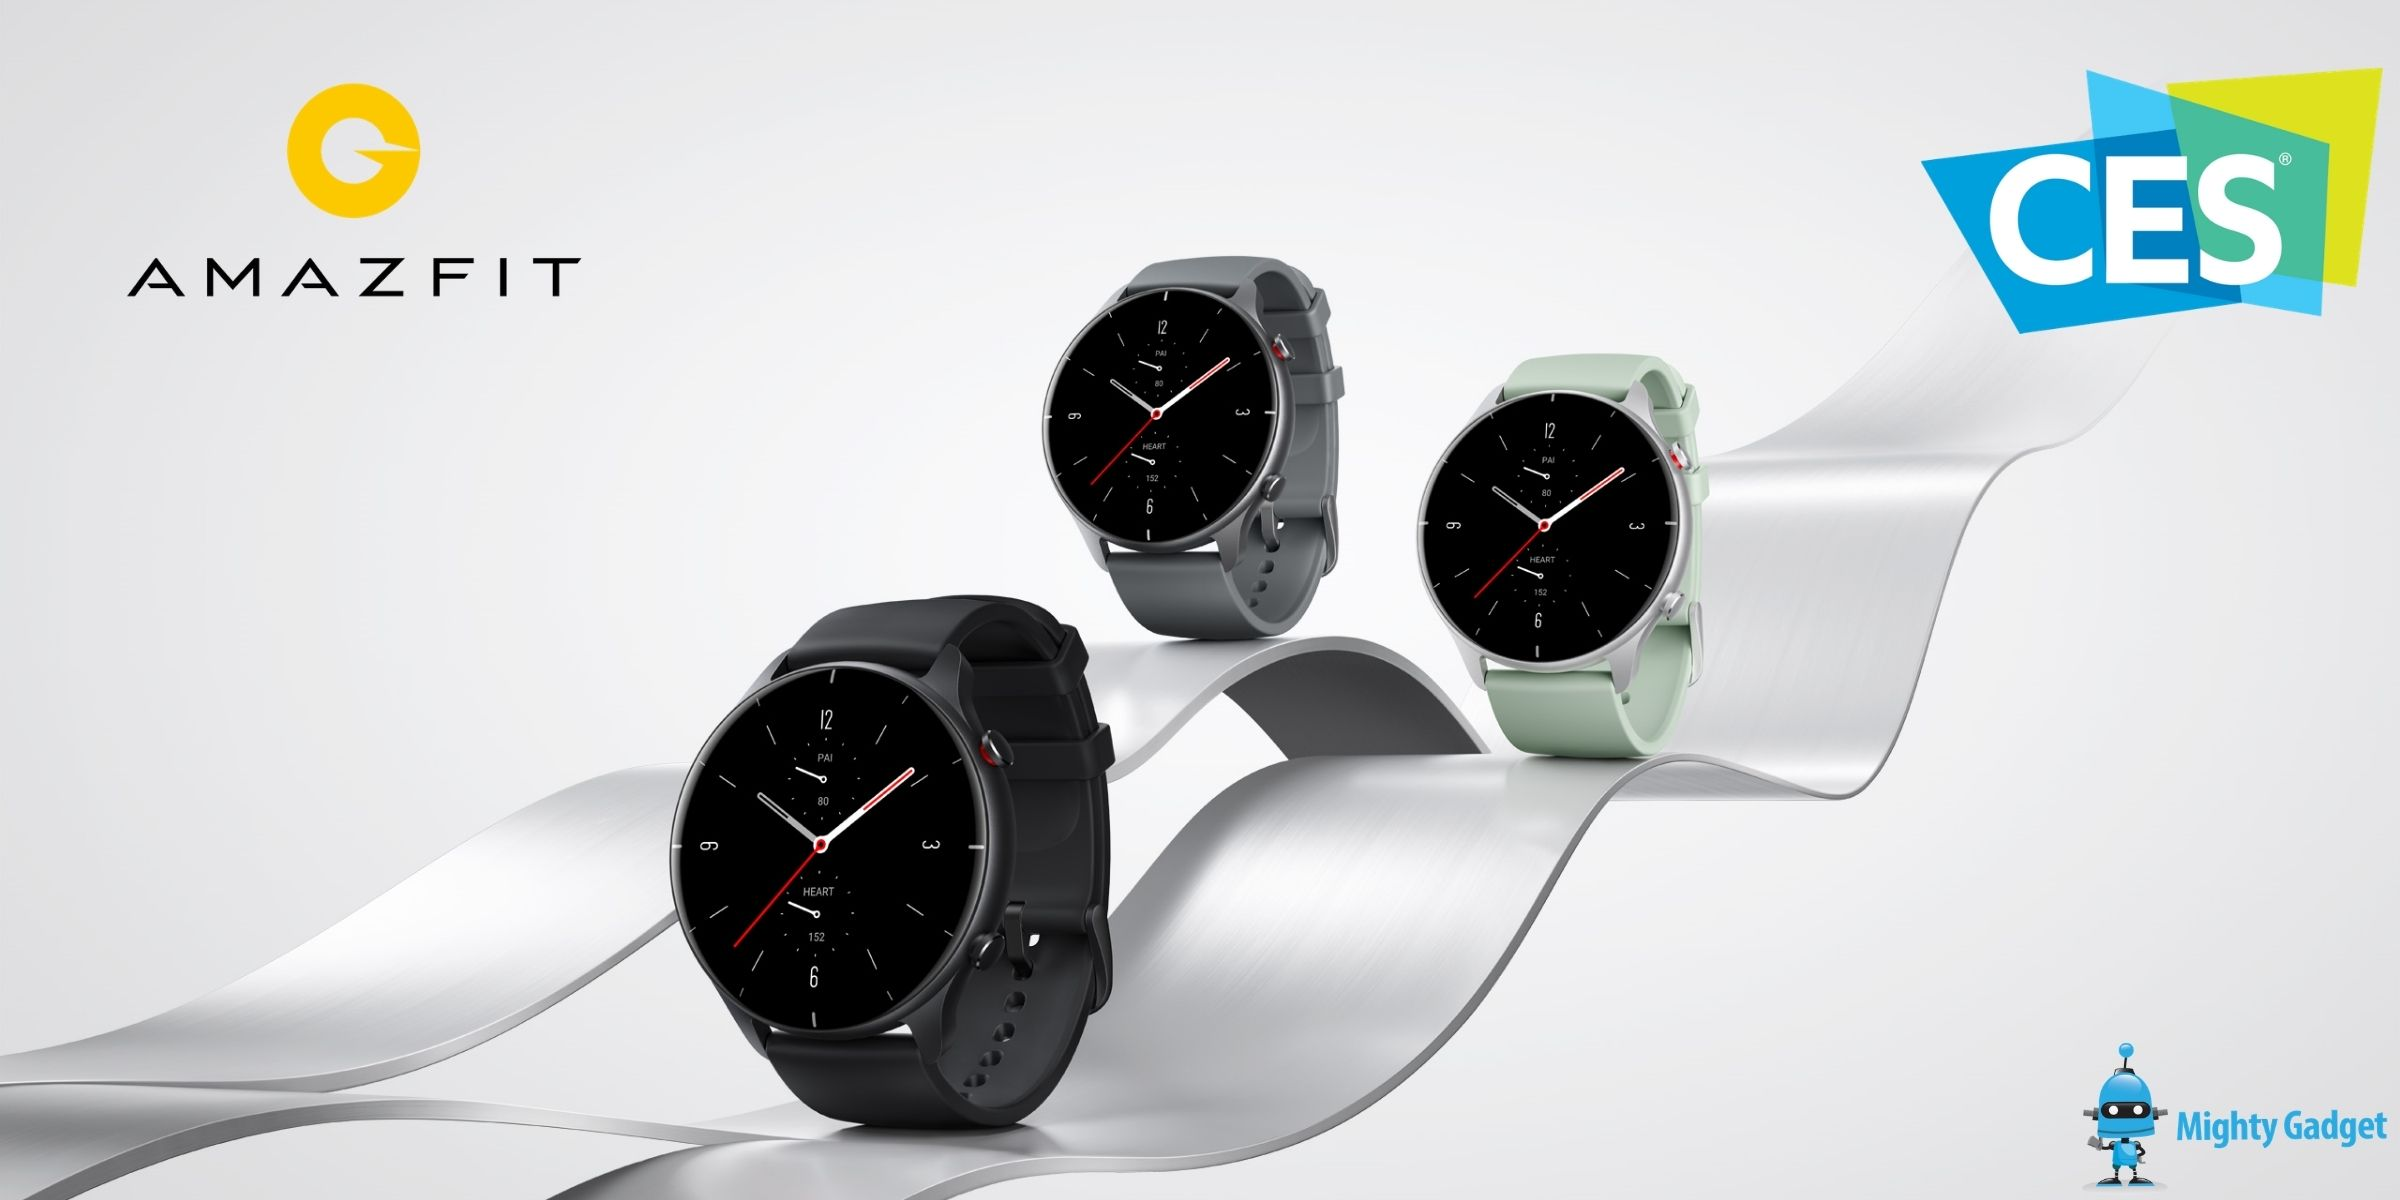 Amazfit GTR 2e & GTS 2e vs GTR 2 & GT 2 Smartwatches – New low-priced alternatives with little compromise. Ideal for Strava